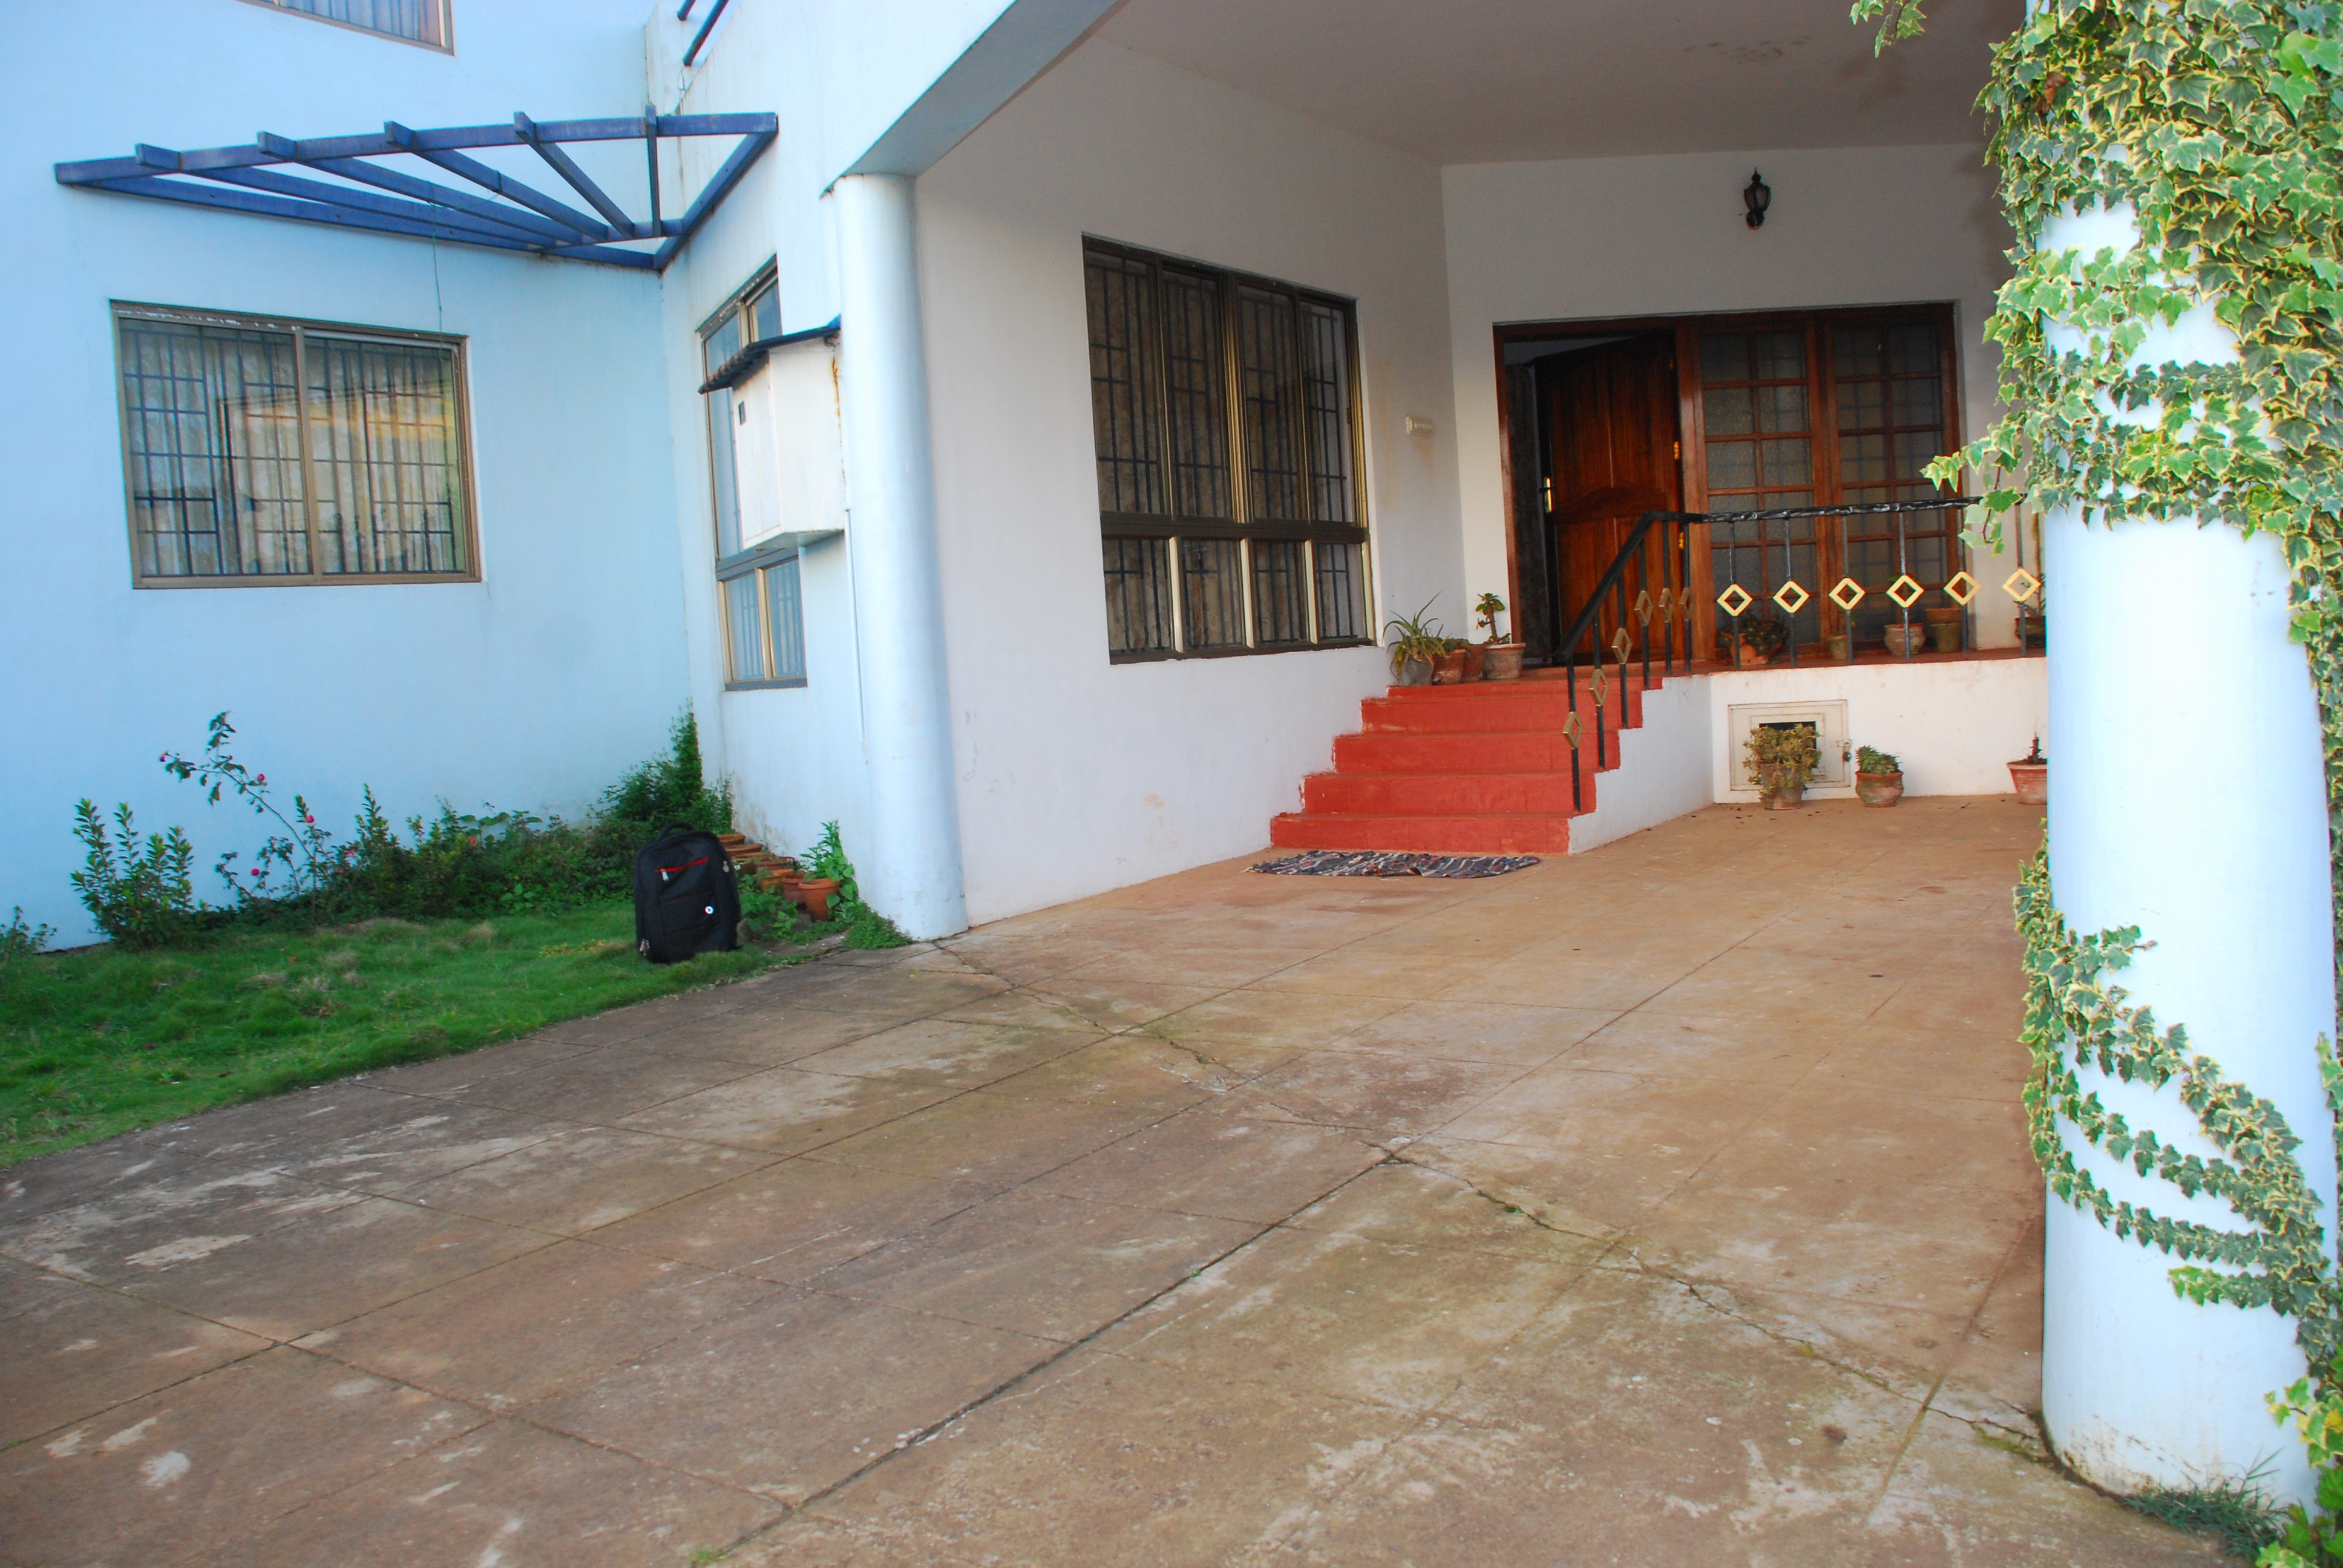 Evergreen cottage ooty ooty india tourist information for Evergreen cottage